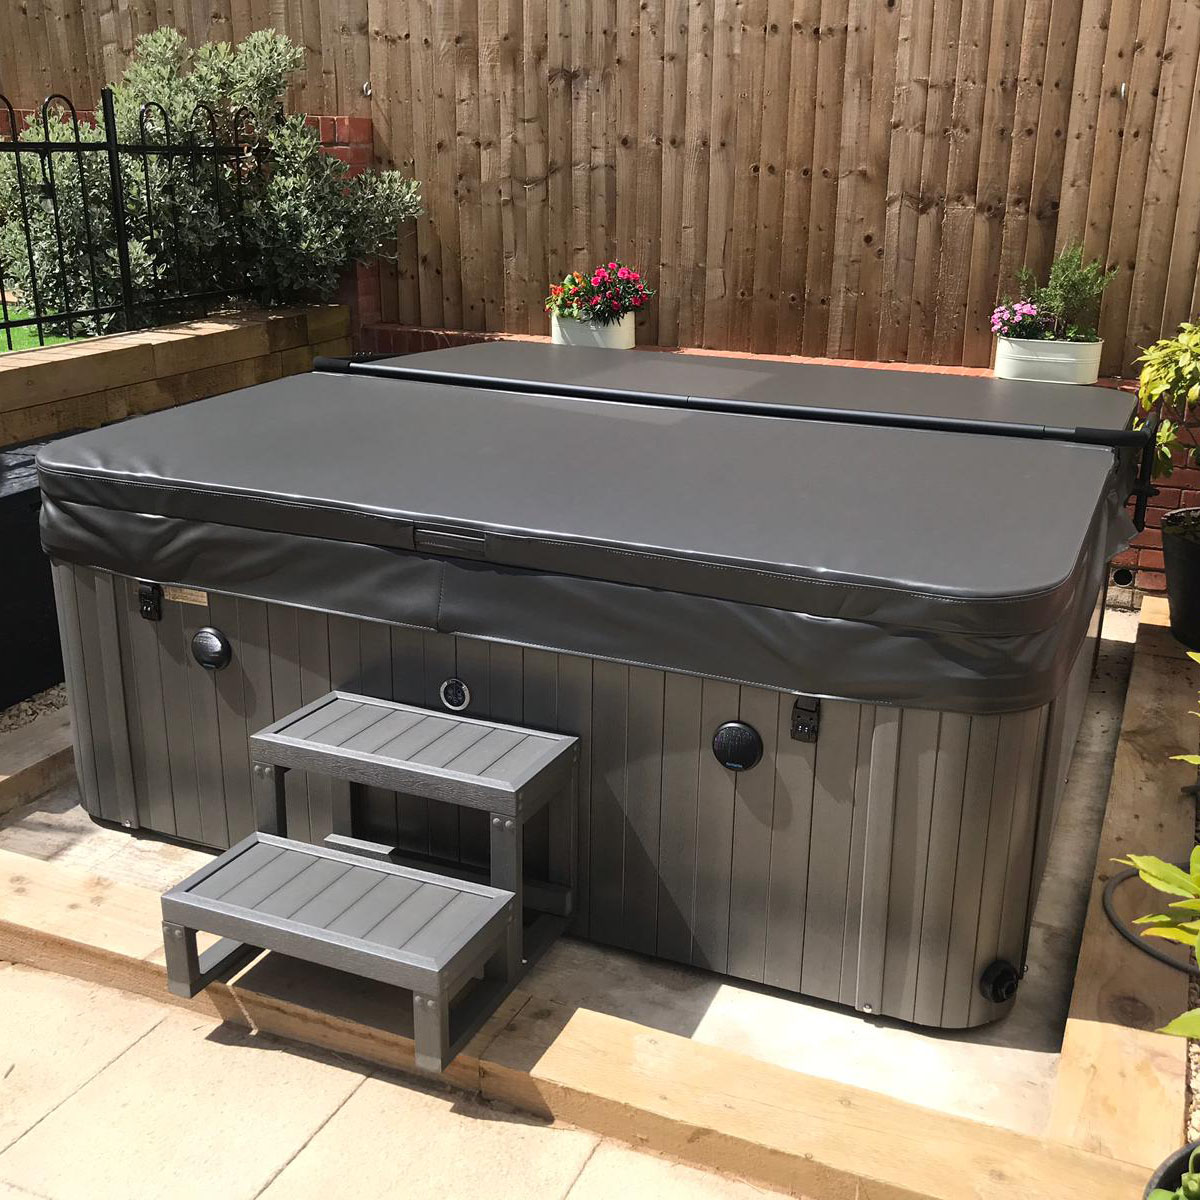 Accessories Hot Tub Cover From Hot Tub Master